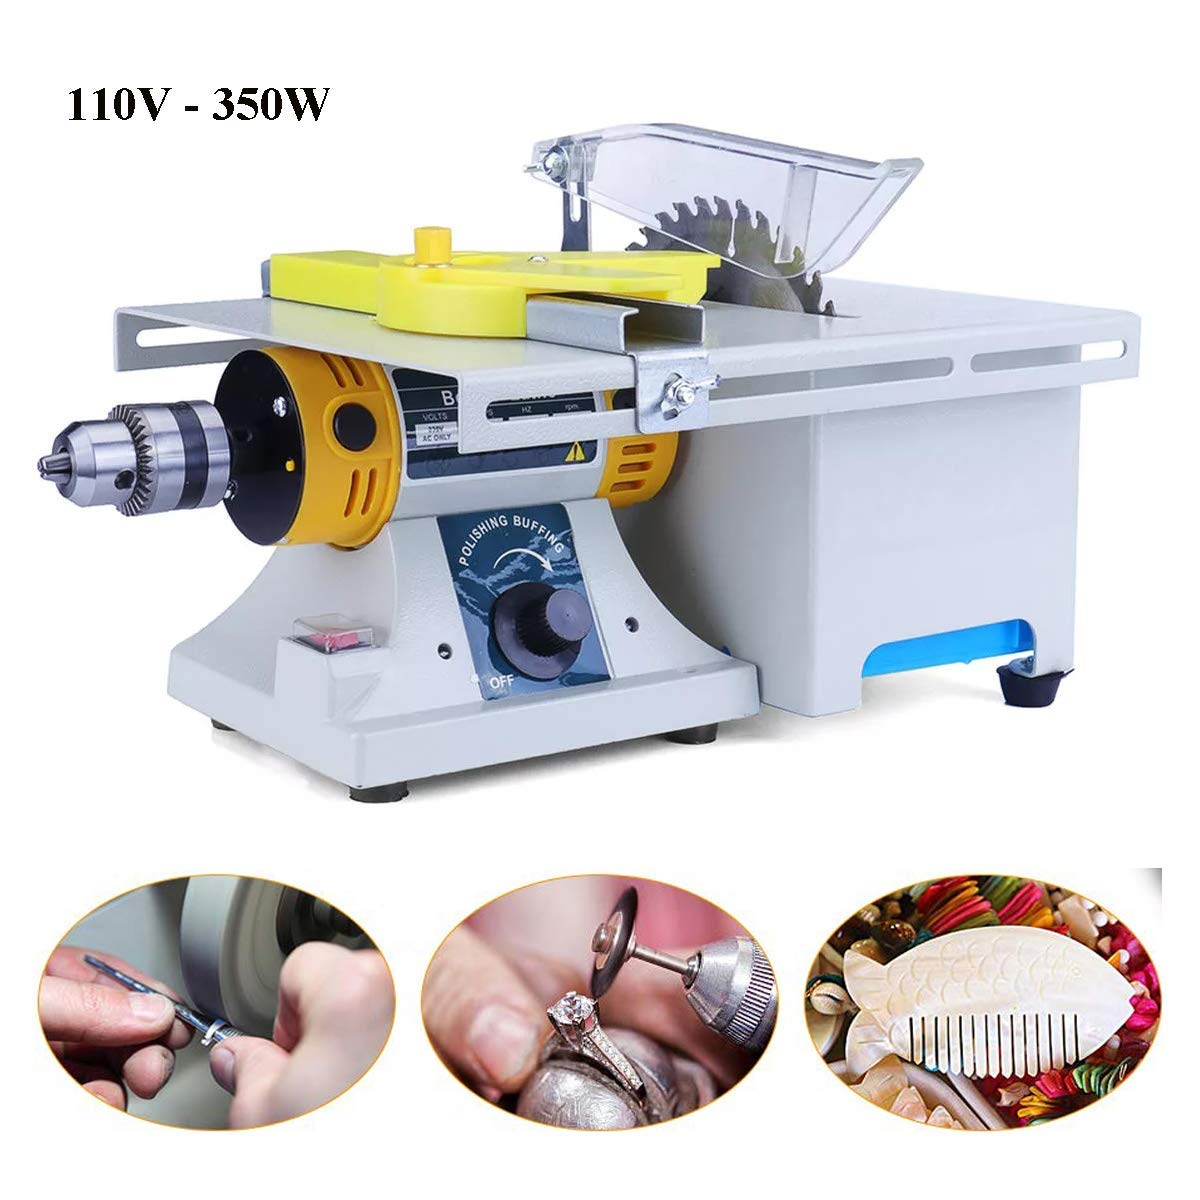 Terrific Upgraded Jewelry Polishing Machine Rock Polisher Bench Buffer Tutu Home Bench Polisher Grinder Mini Table Saw Kit For Gem Metal Woodworking With Dailytribune Chair Design For Home Dailytribuneorg